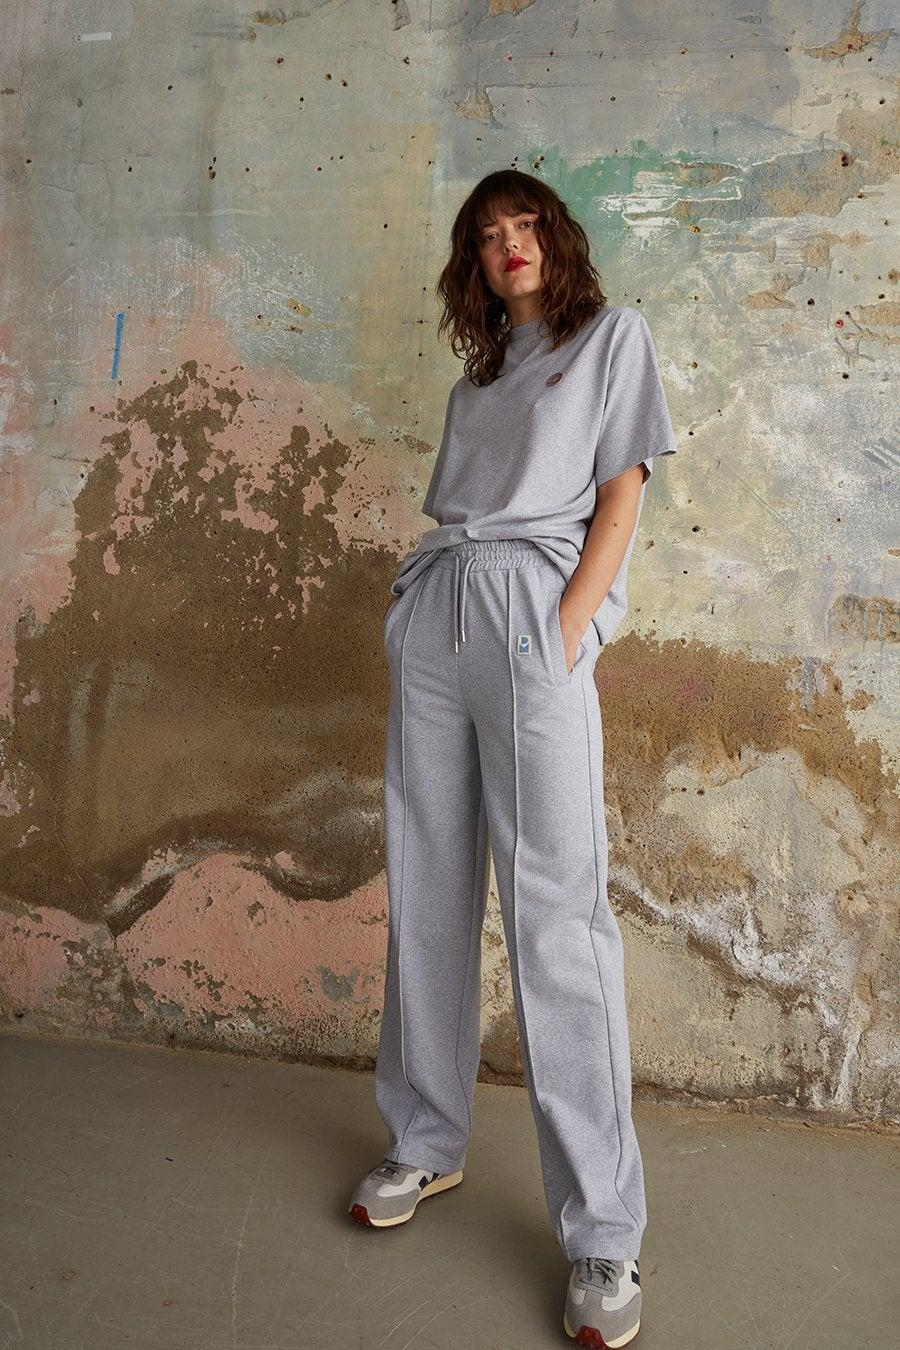 """<br><br><strong>Damson Madder</strong> Straight Leg Drawstring Joggers in Grey, $, available at <a href=""""https://damsonmadder.com/collections/new-in/products/straight-leg-relaxed-trousers-grey"""" rel=""""nofollow noopener"""" target=""""_blank"""" data-ylk=""""slk:Damson Madder"""" class=""""link rapid-noclick-resp"""">Damson Madder</a>"""